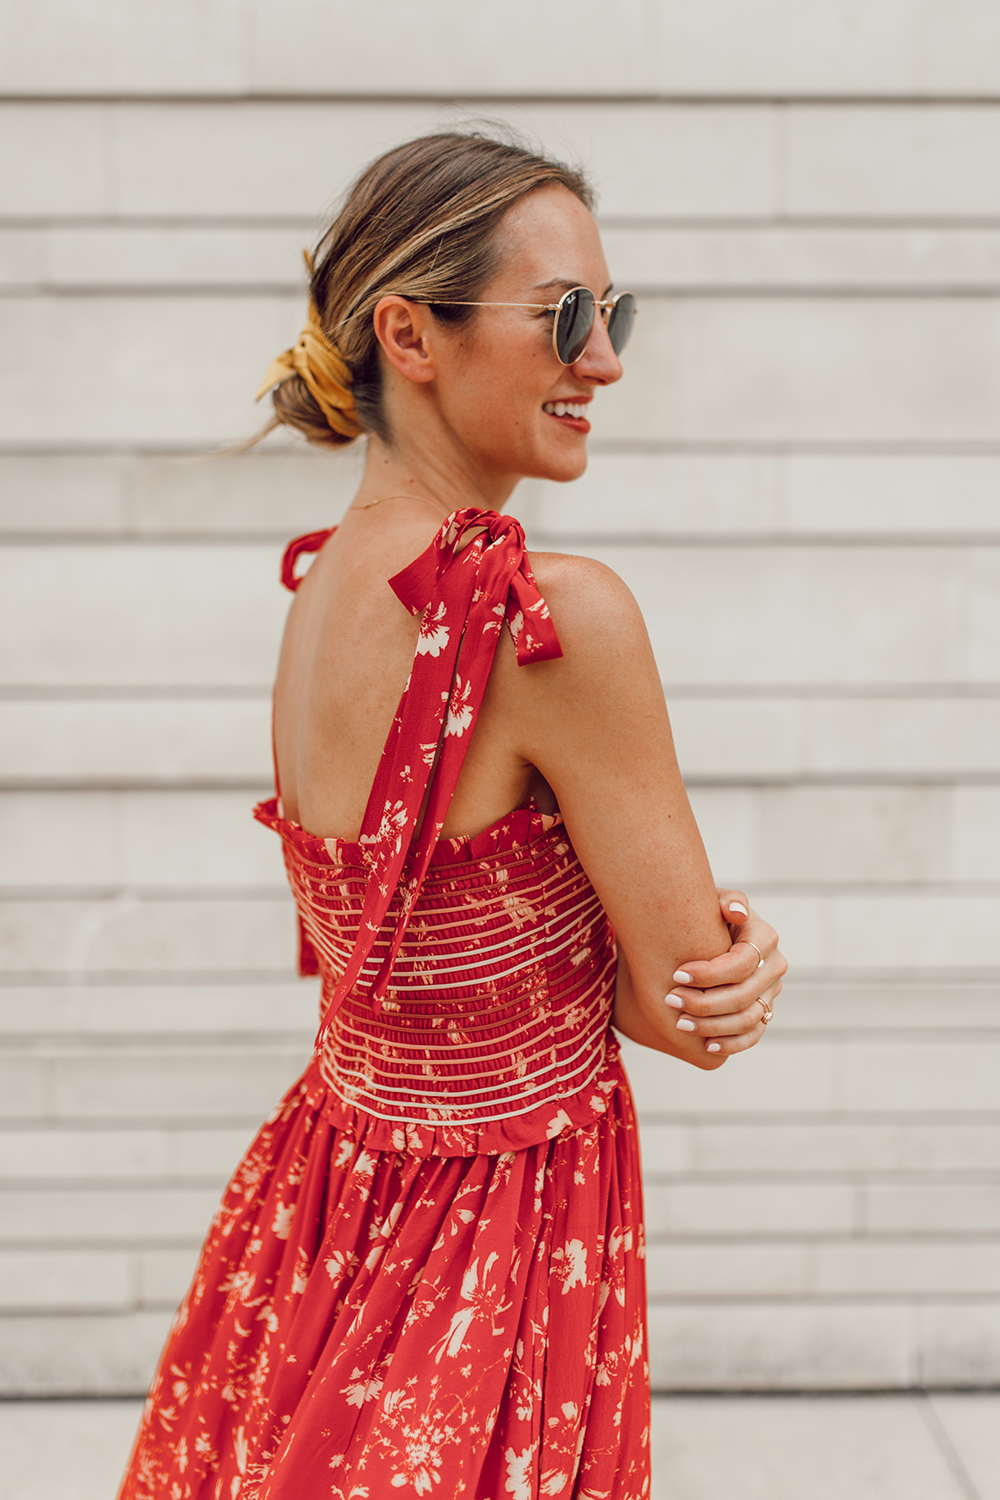 livvyland-blog-olivia-watson-austin-texas-fashion-style-blogger-free-people-red-maxi-dress-jumper-jumpsuit-summer-bbq-outfit-idea-2